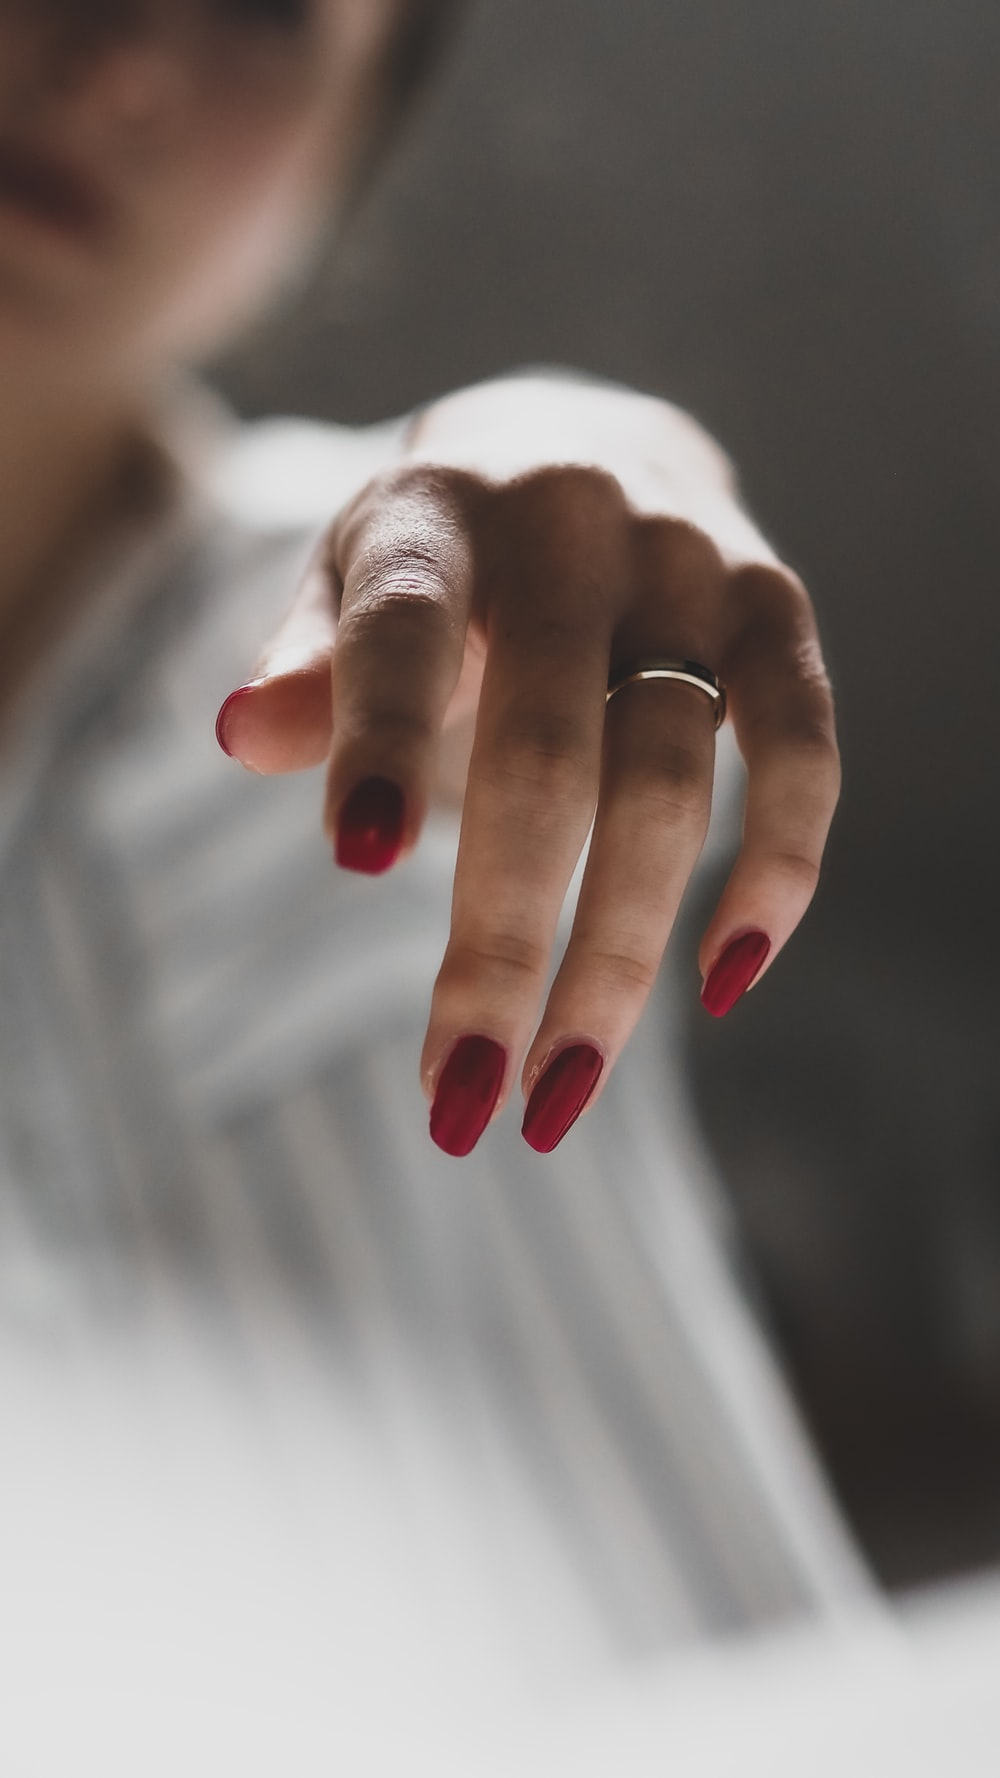 person wearing silver ring on left ring finger